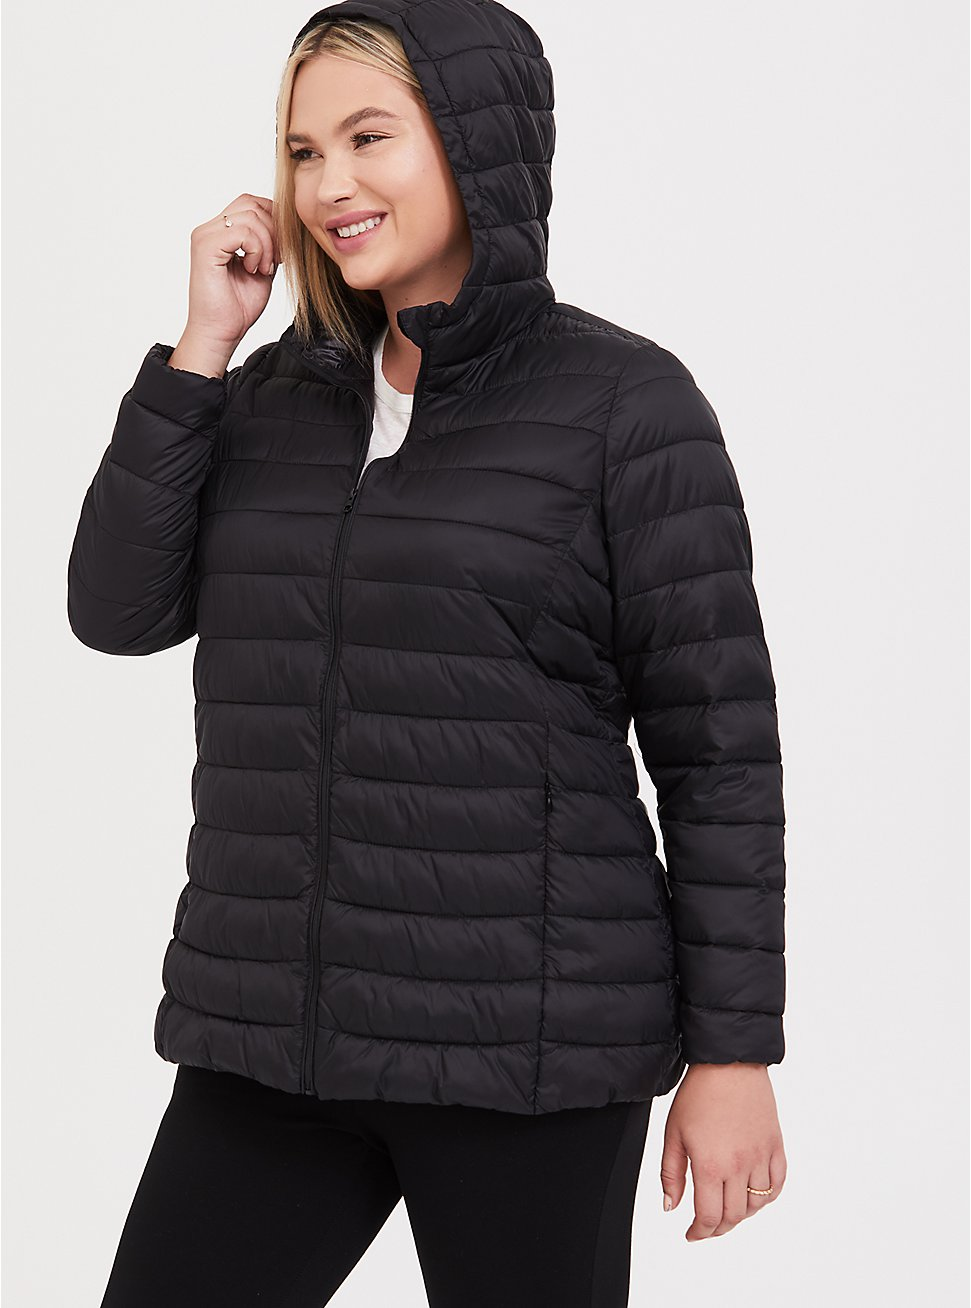 Black Nylon Packable Puffer Jacket, DEEP BLACK, hi-res